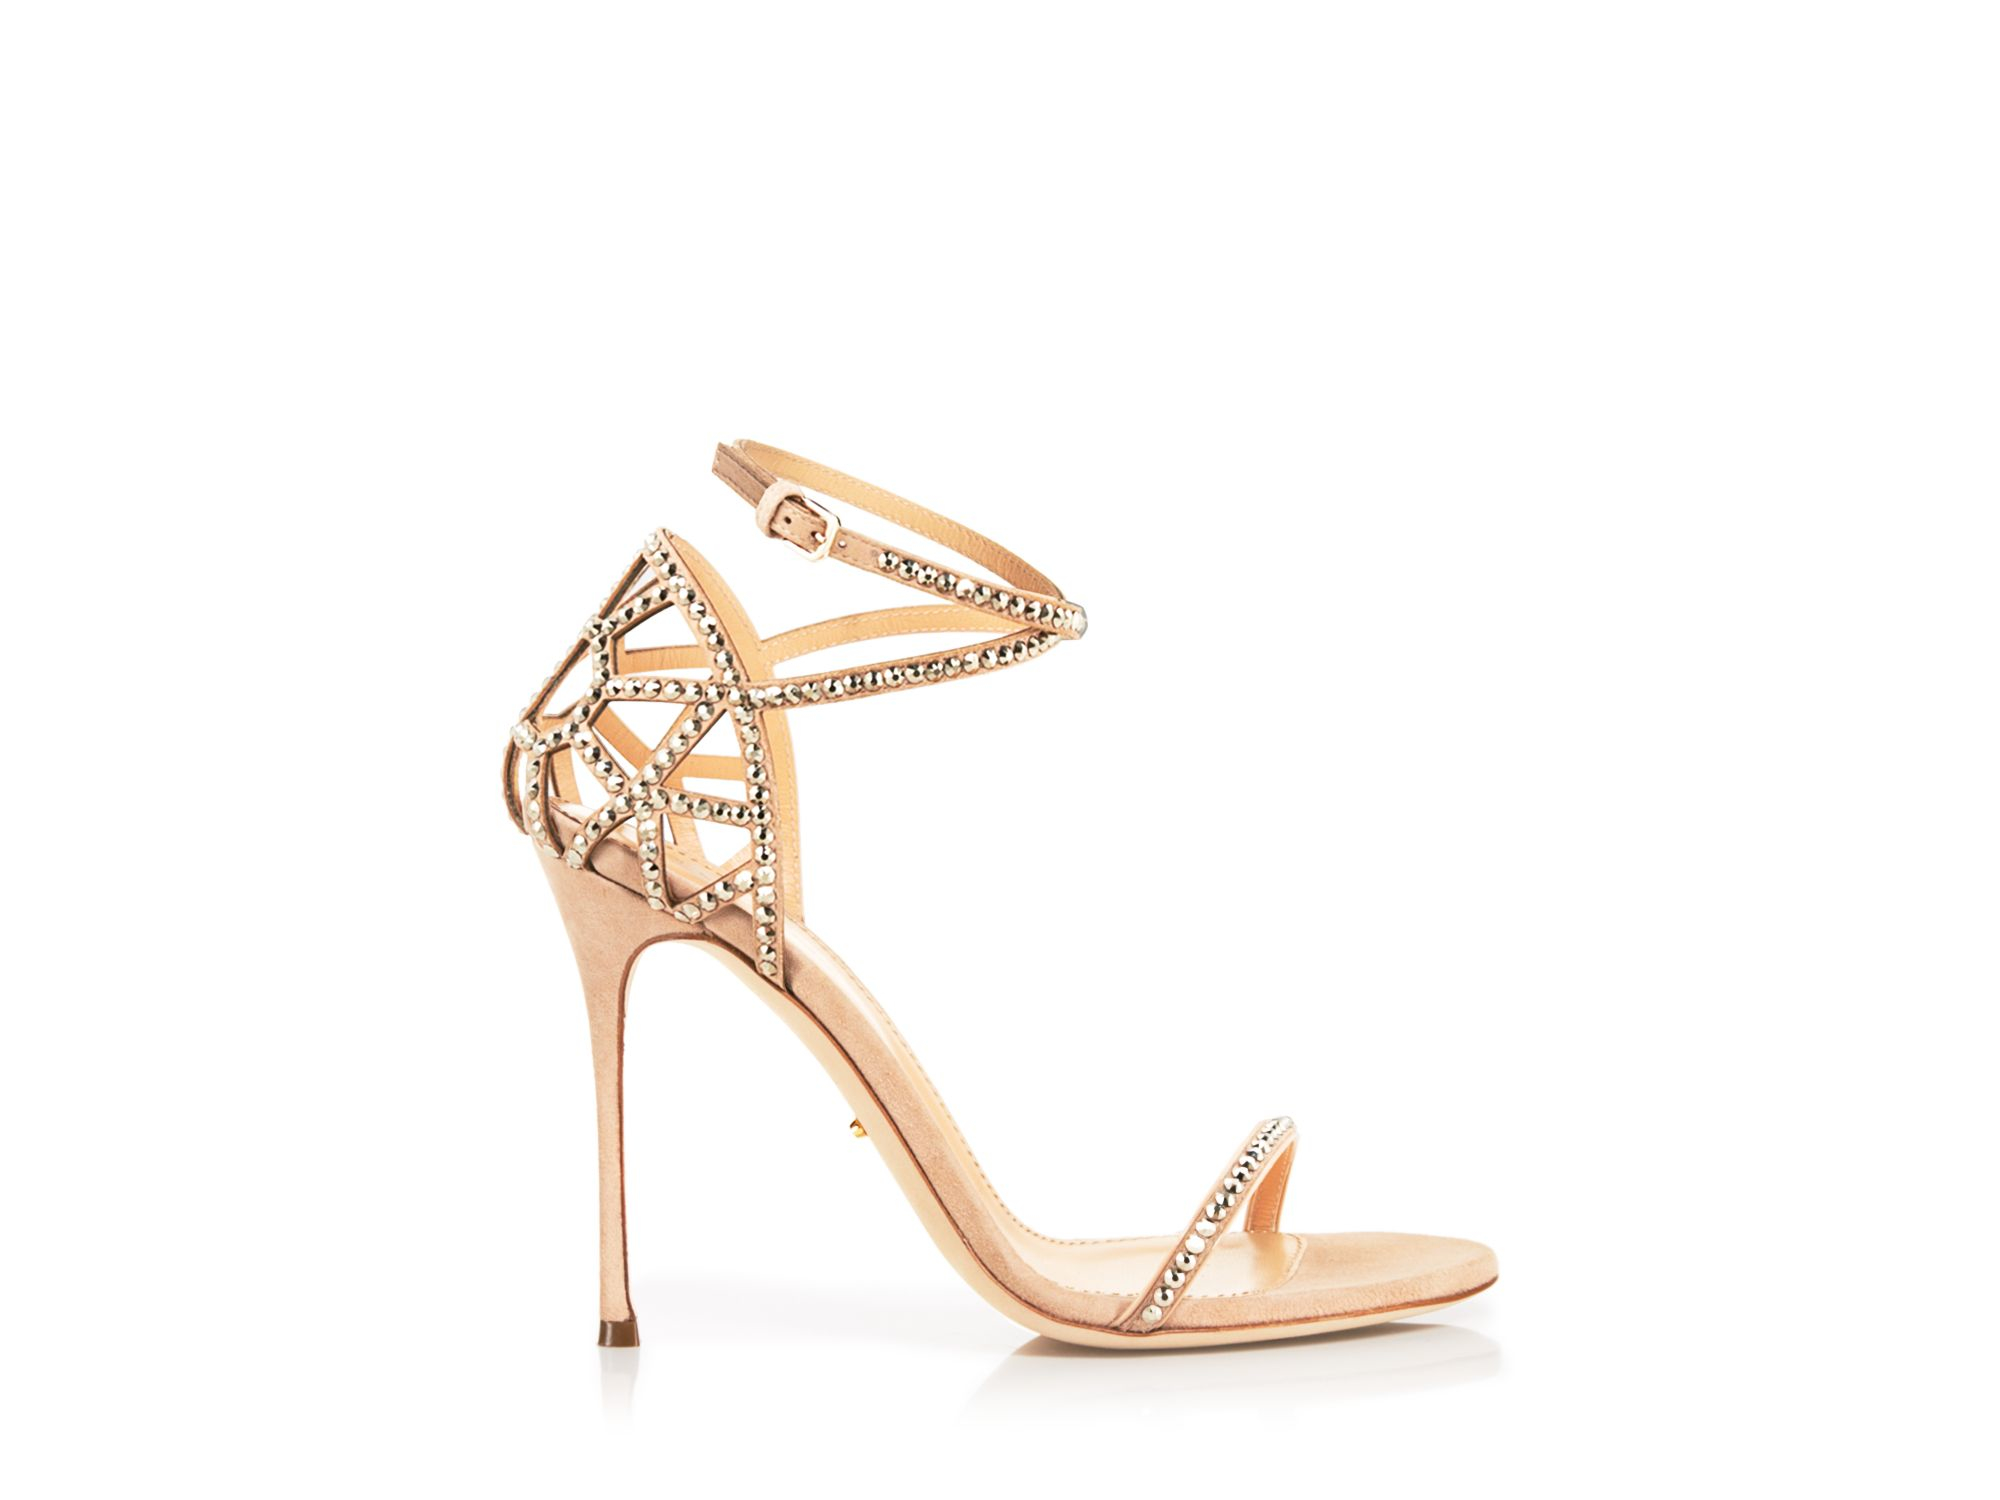 5b6c78ae7d49 Sergio Rossi Strappy Sandals - Puzzle High Heel in Natural - Lyst